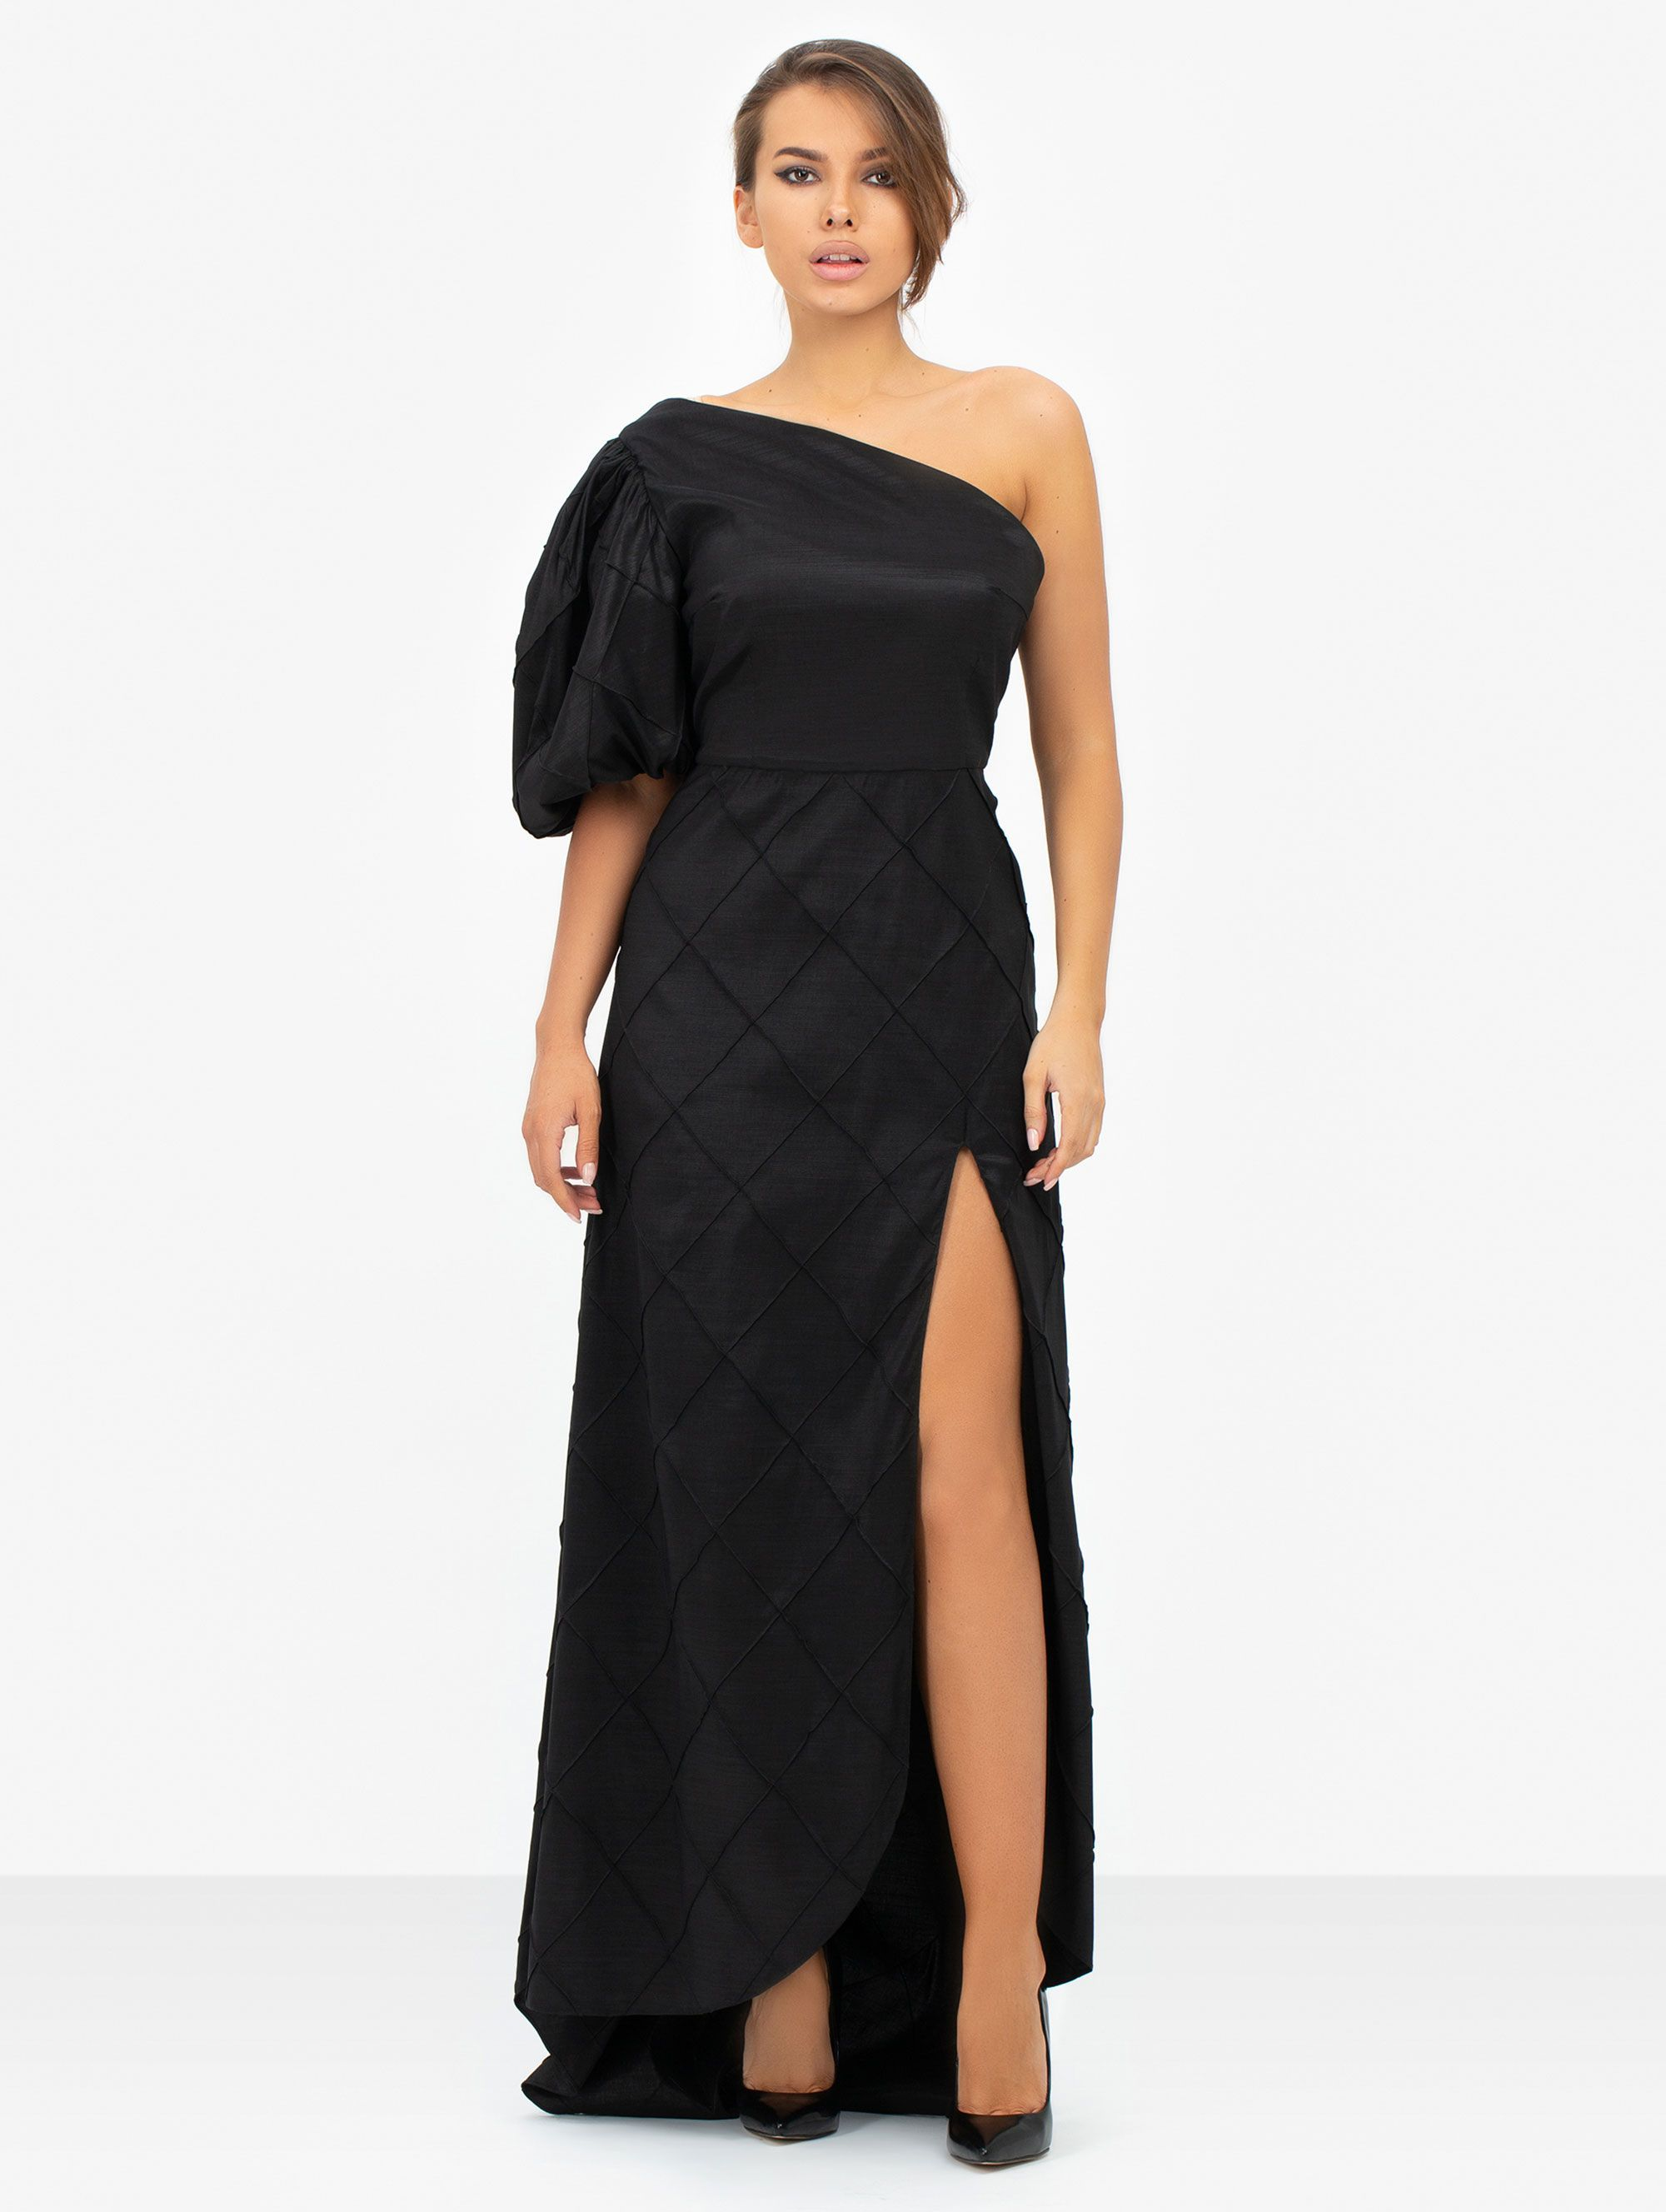 Masterpiece Black Cut Dress